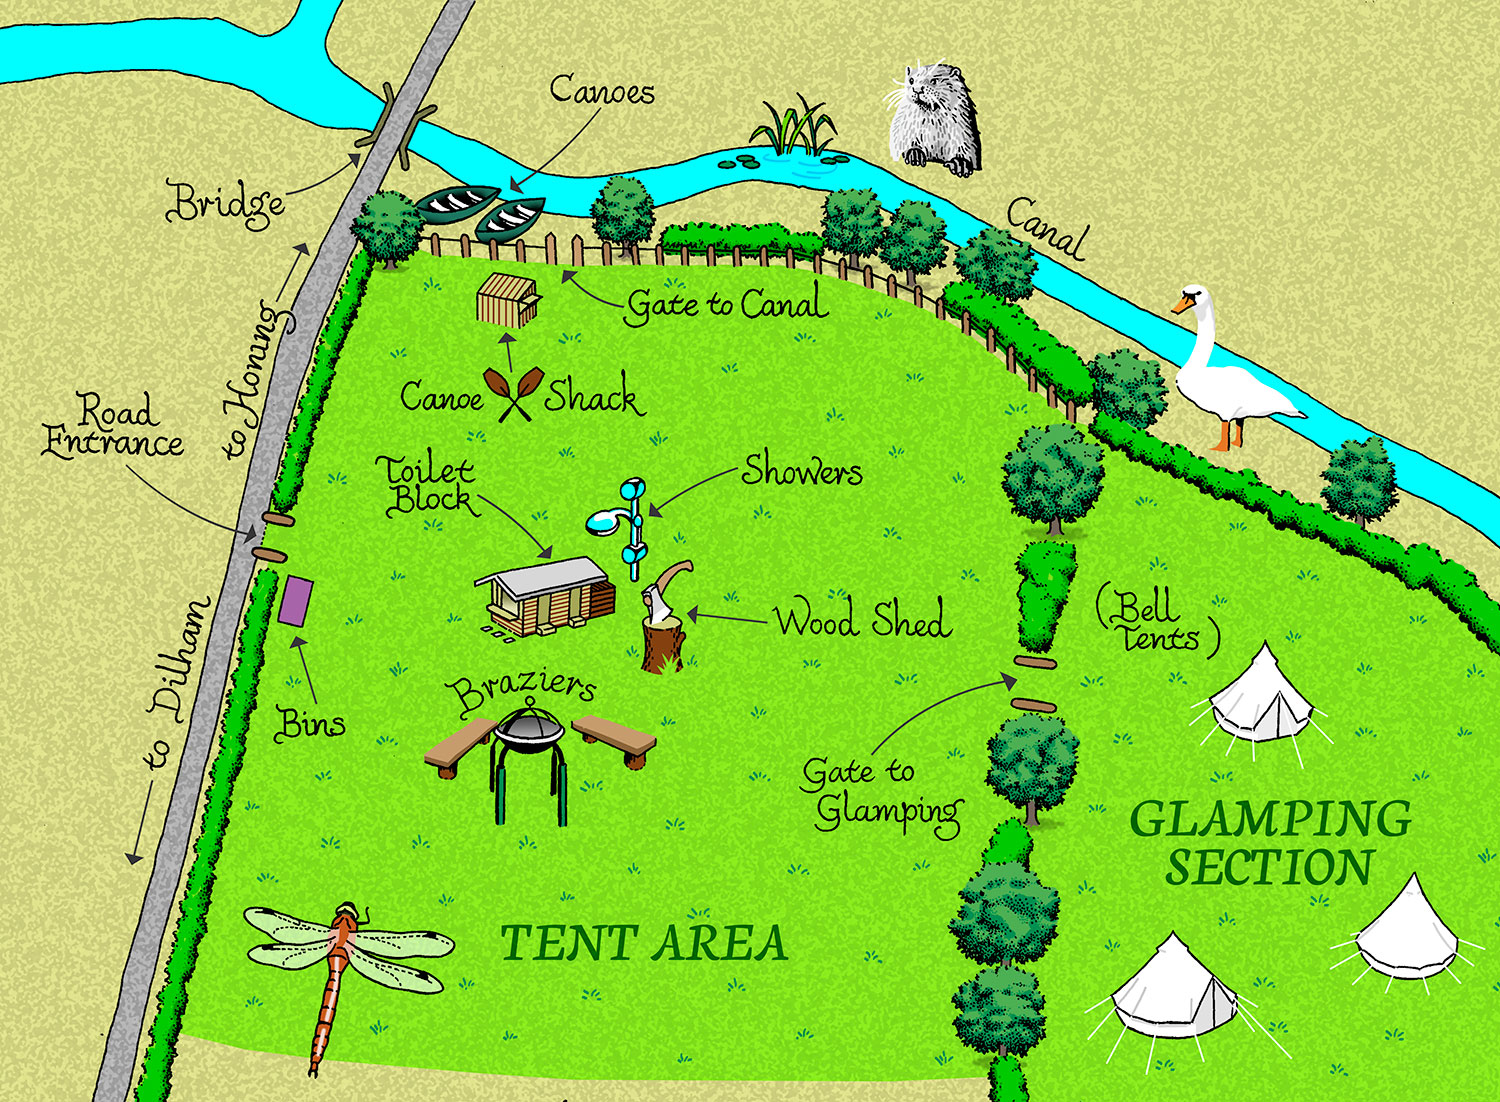 Canal Camping campsite map